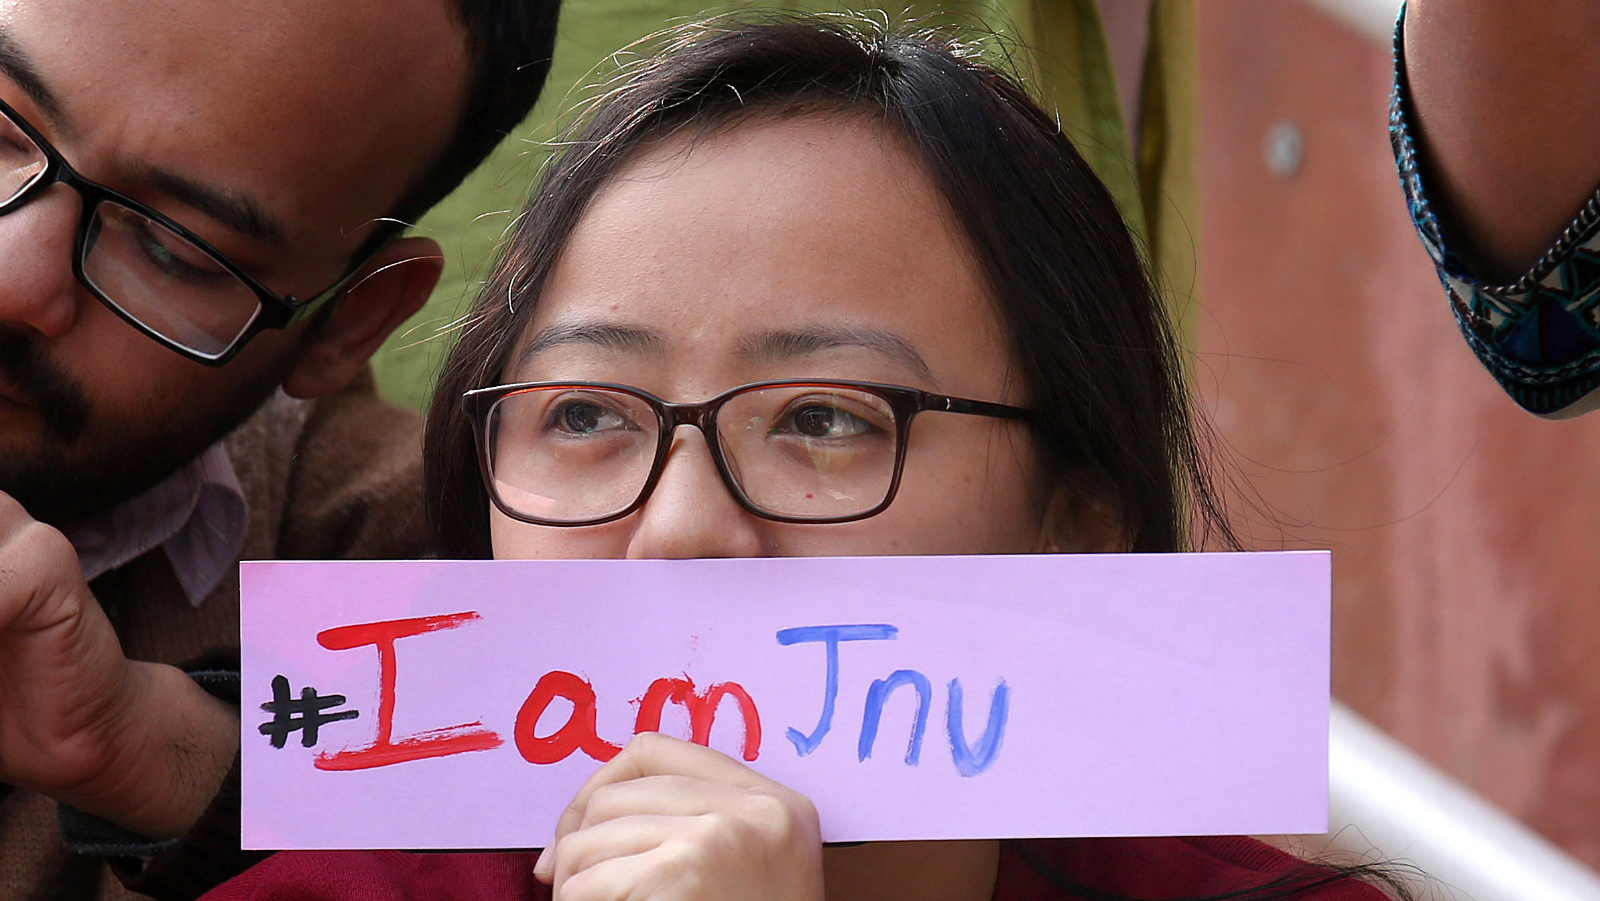 epa05164362 An Indian student of the Jawaharlal Nehru University (JNU) holds a placard during a protest inside JNU campus in New Delhi, India, 16 February 2016. A former Delhi University professor was arrested on 16 February for sedition, as protests escalated at another university whose students' union president was earlier detained for the same charge. Activists from the ruling Hindu nationalist Bharatiya Janata Party's student wing and right-wing organizations, which accuse demonstrators of being 'anti-nationals', also gathered near the university for counter-protests. EPA/RAJAT GUPTA